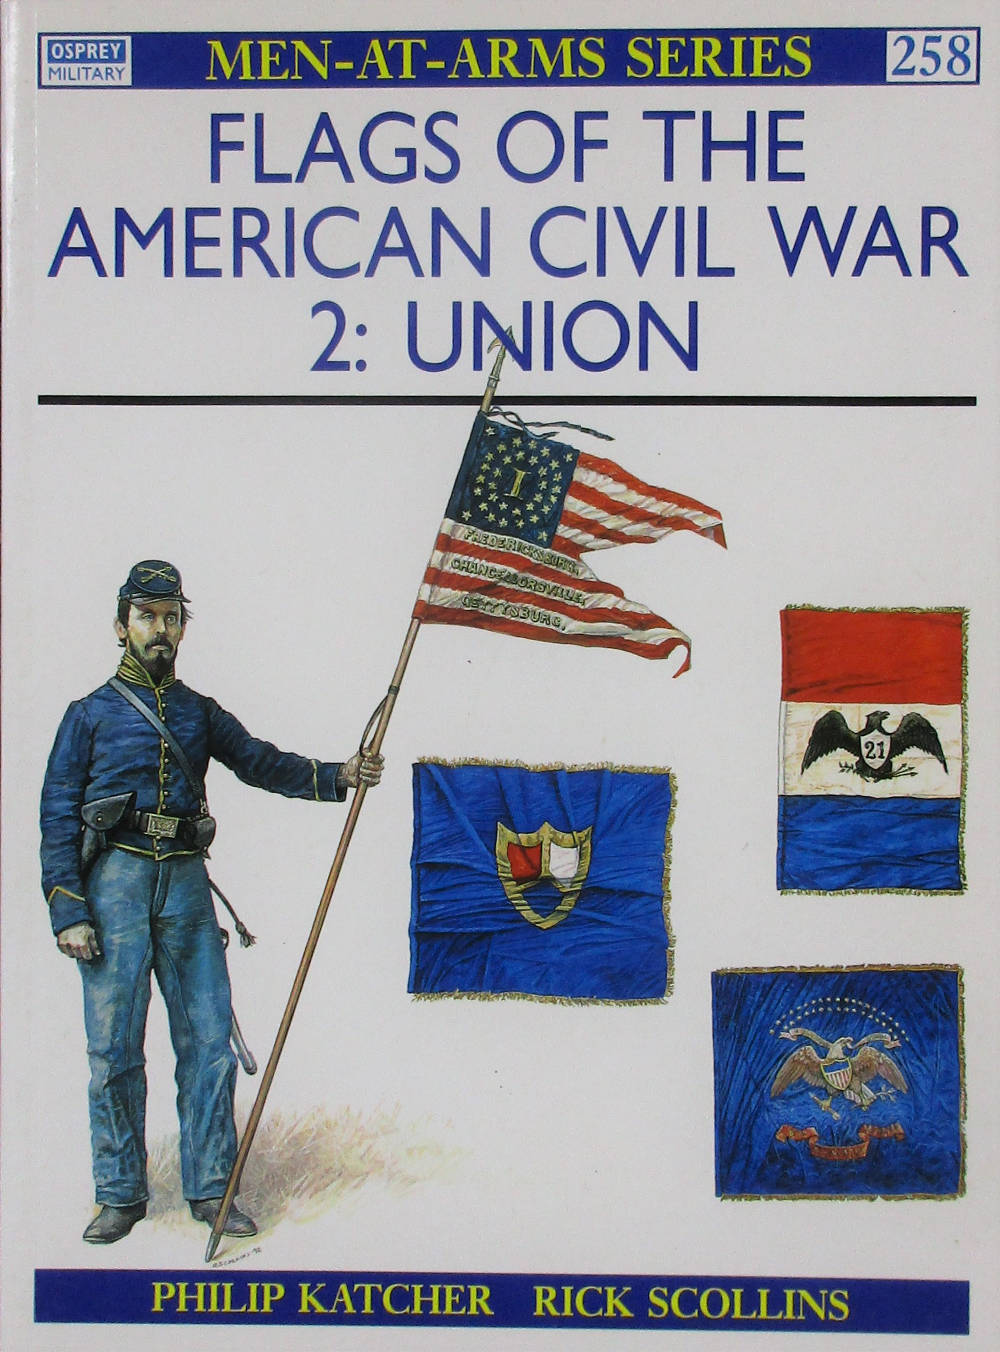 Flags of the American Civil War 2: Union